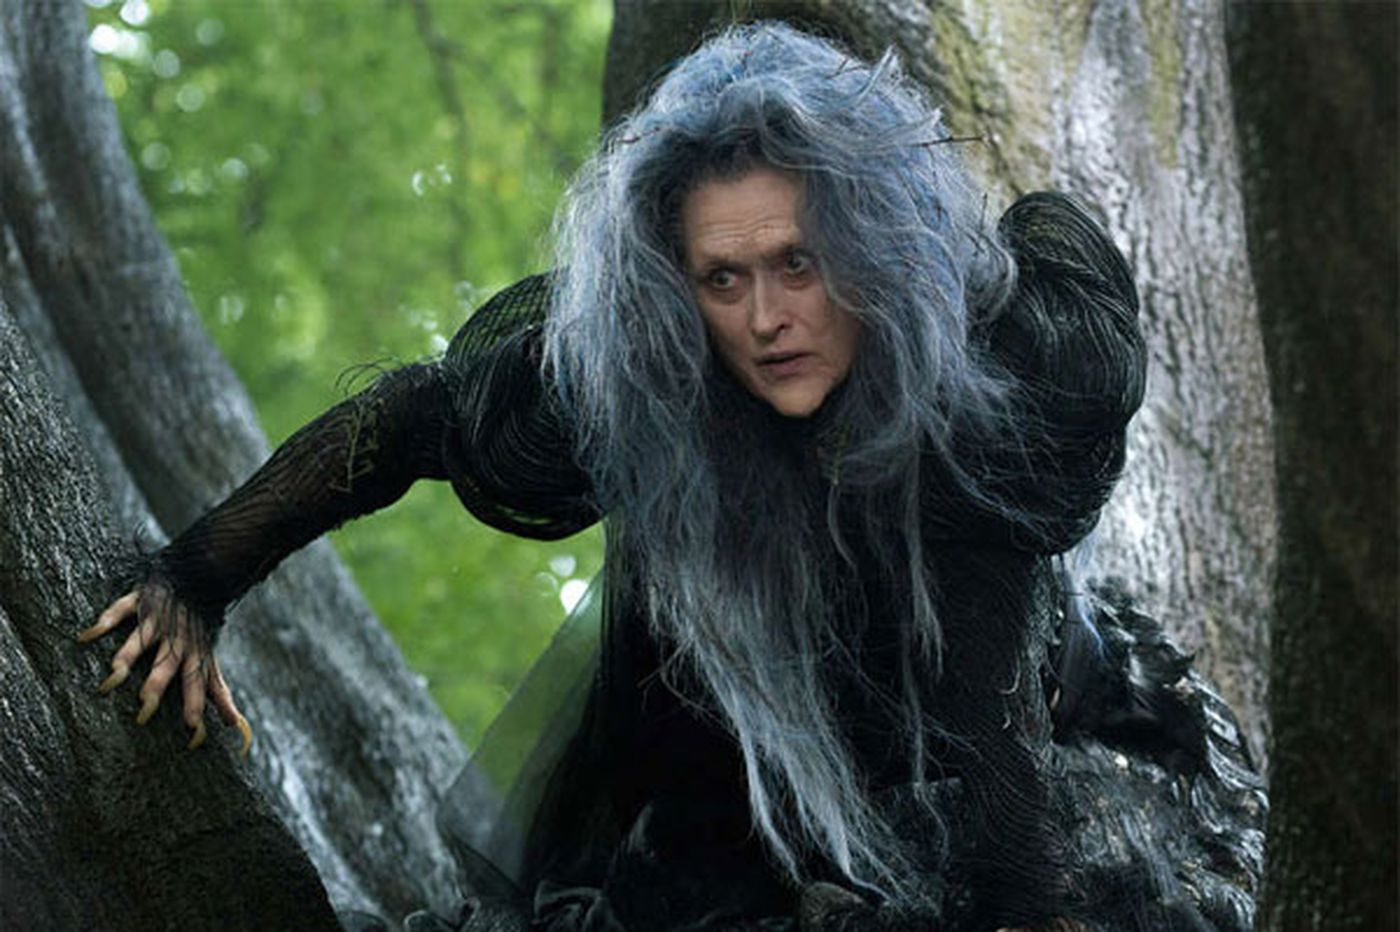 'Into the Woods': Once upon a Sondheim score